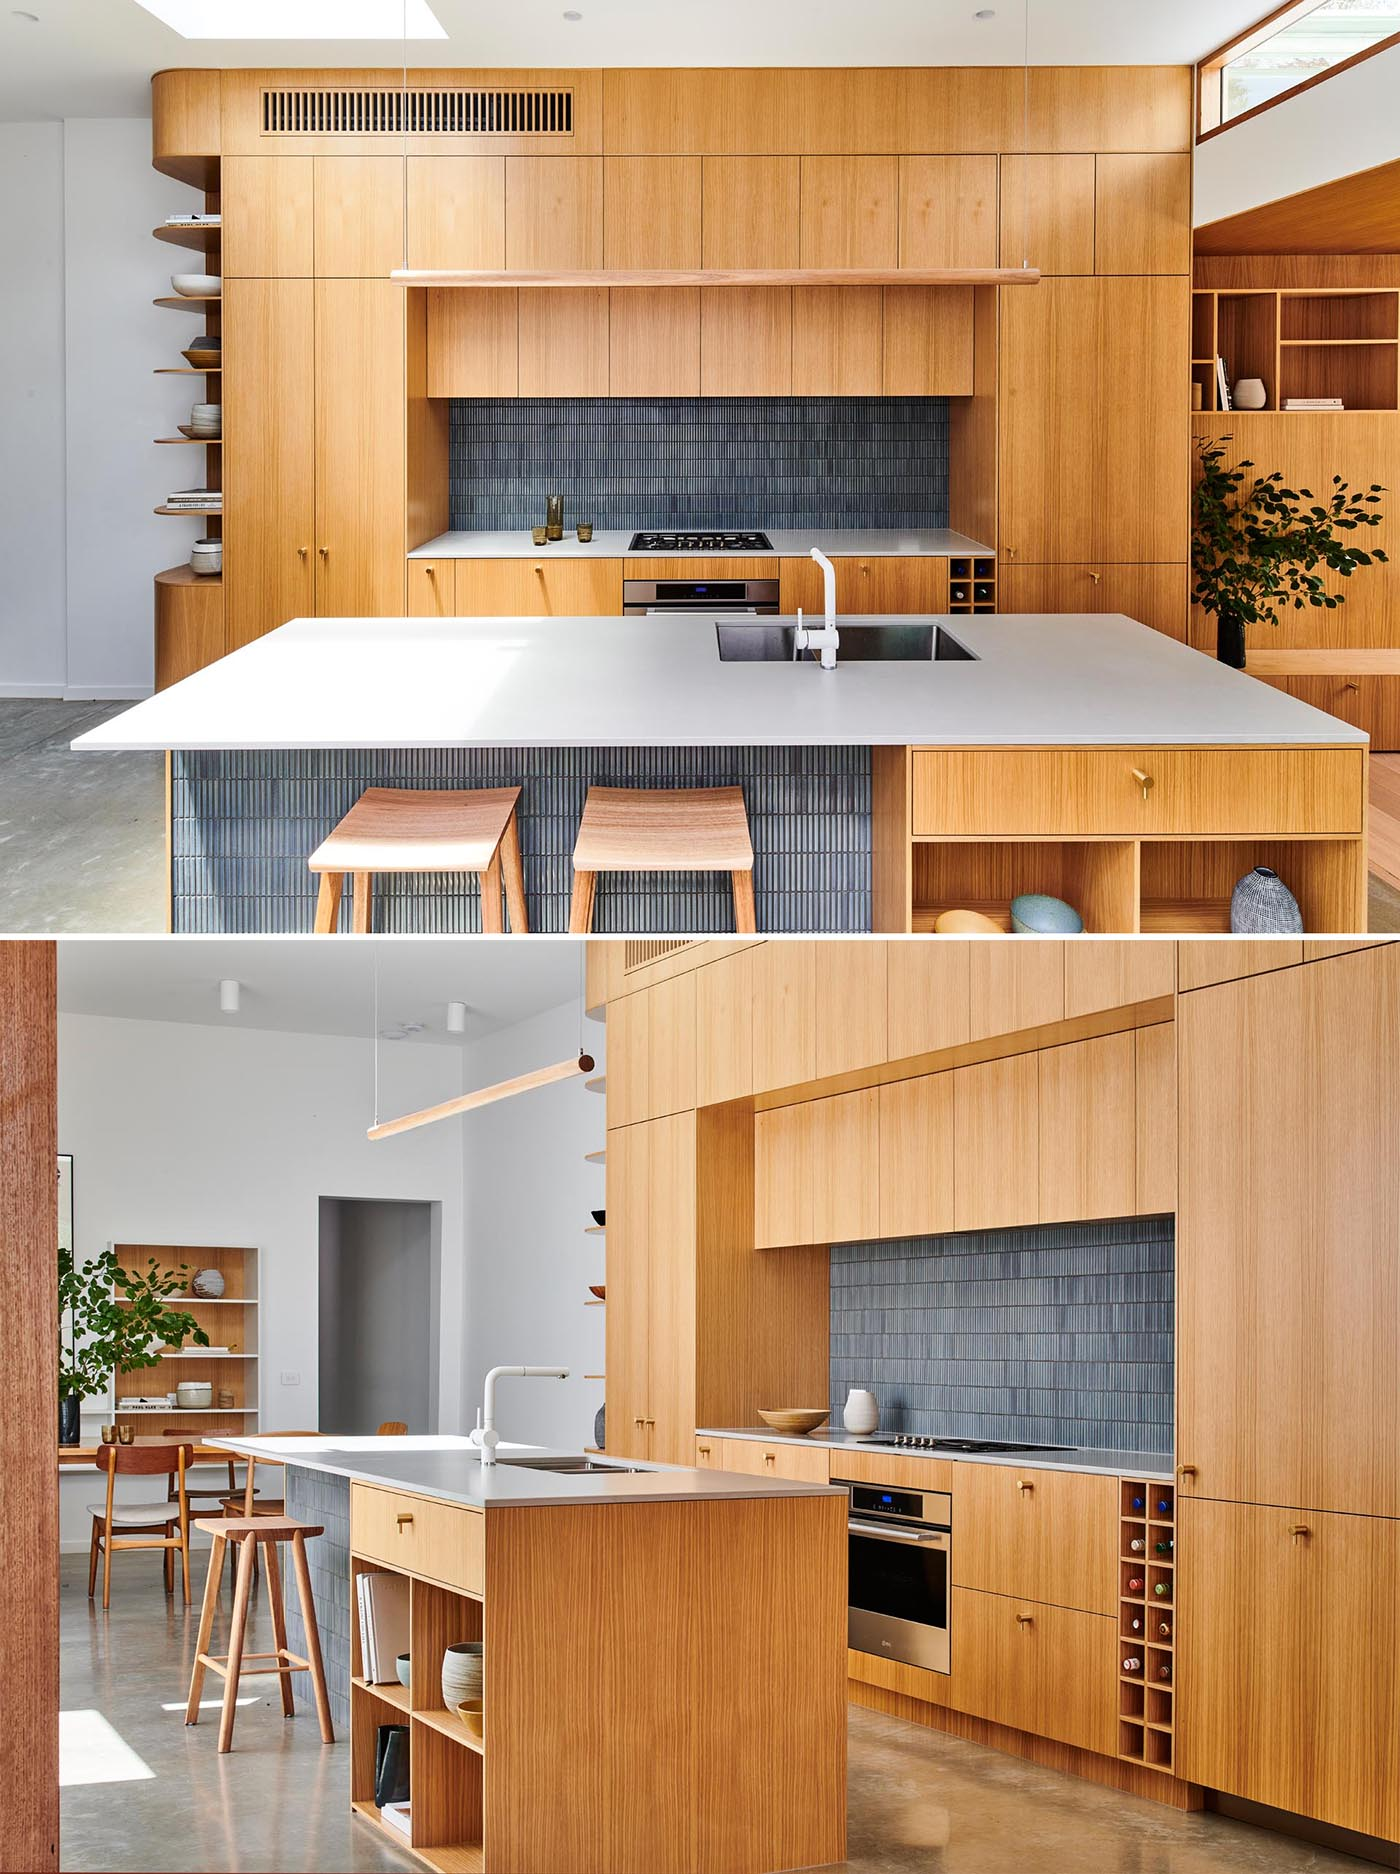 A modern wood kitchen with gray tiles, an island, open shelving, white countertop, and built-in wine storage.